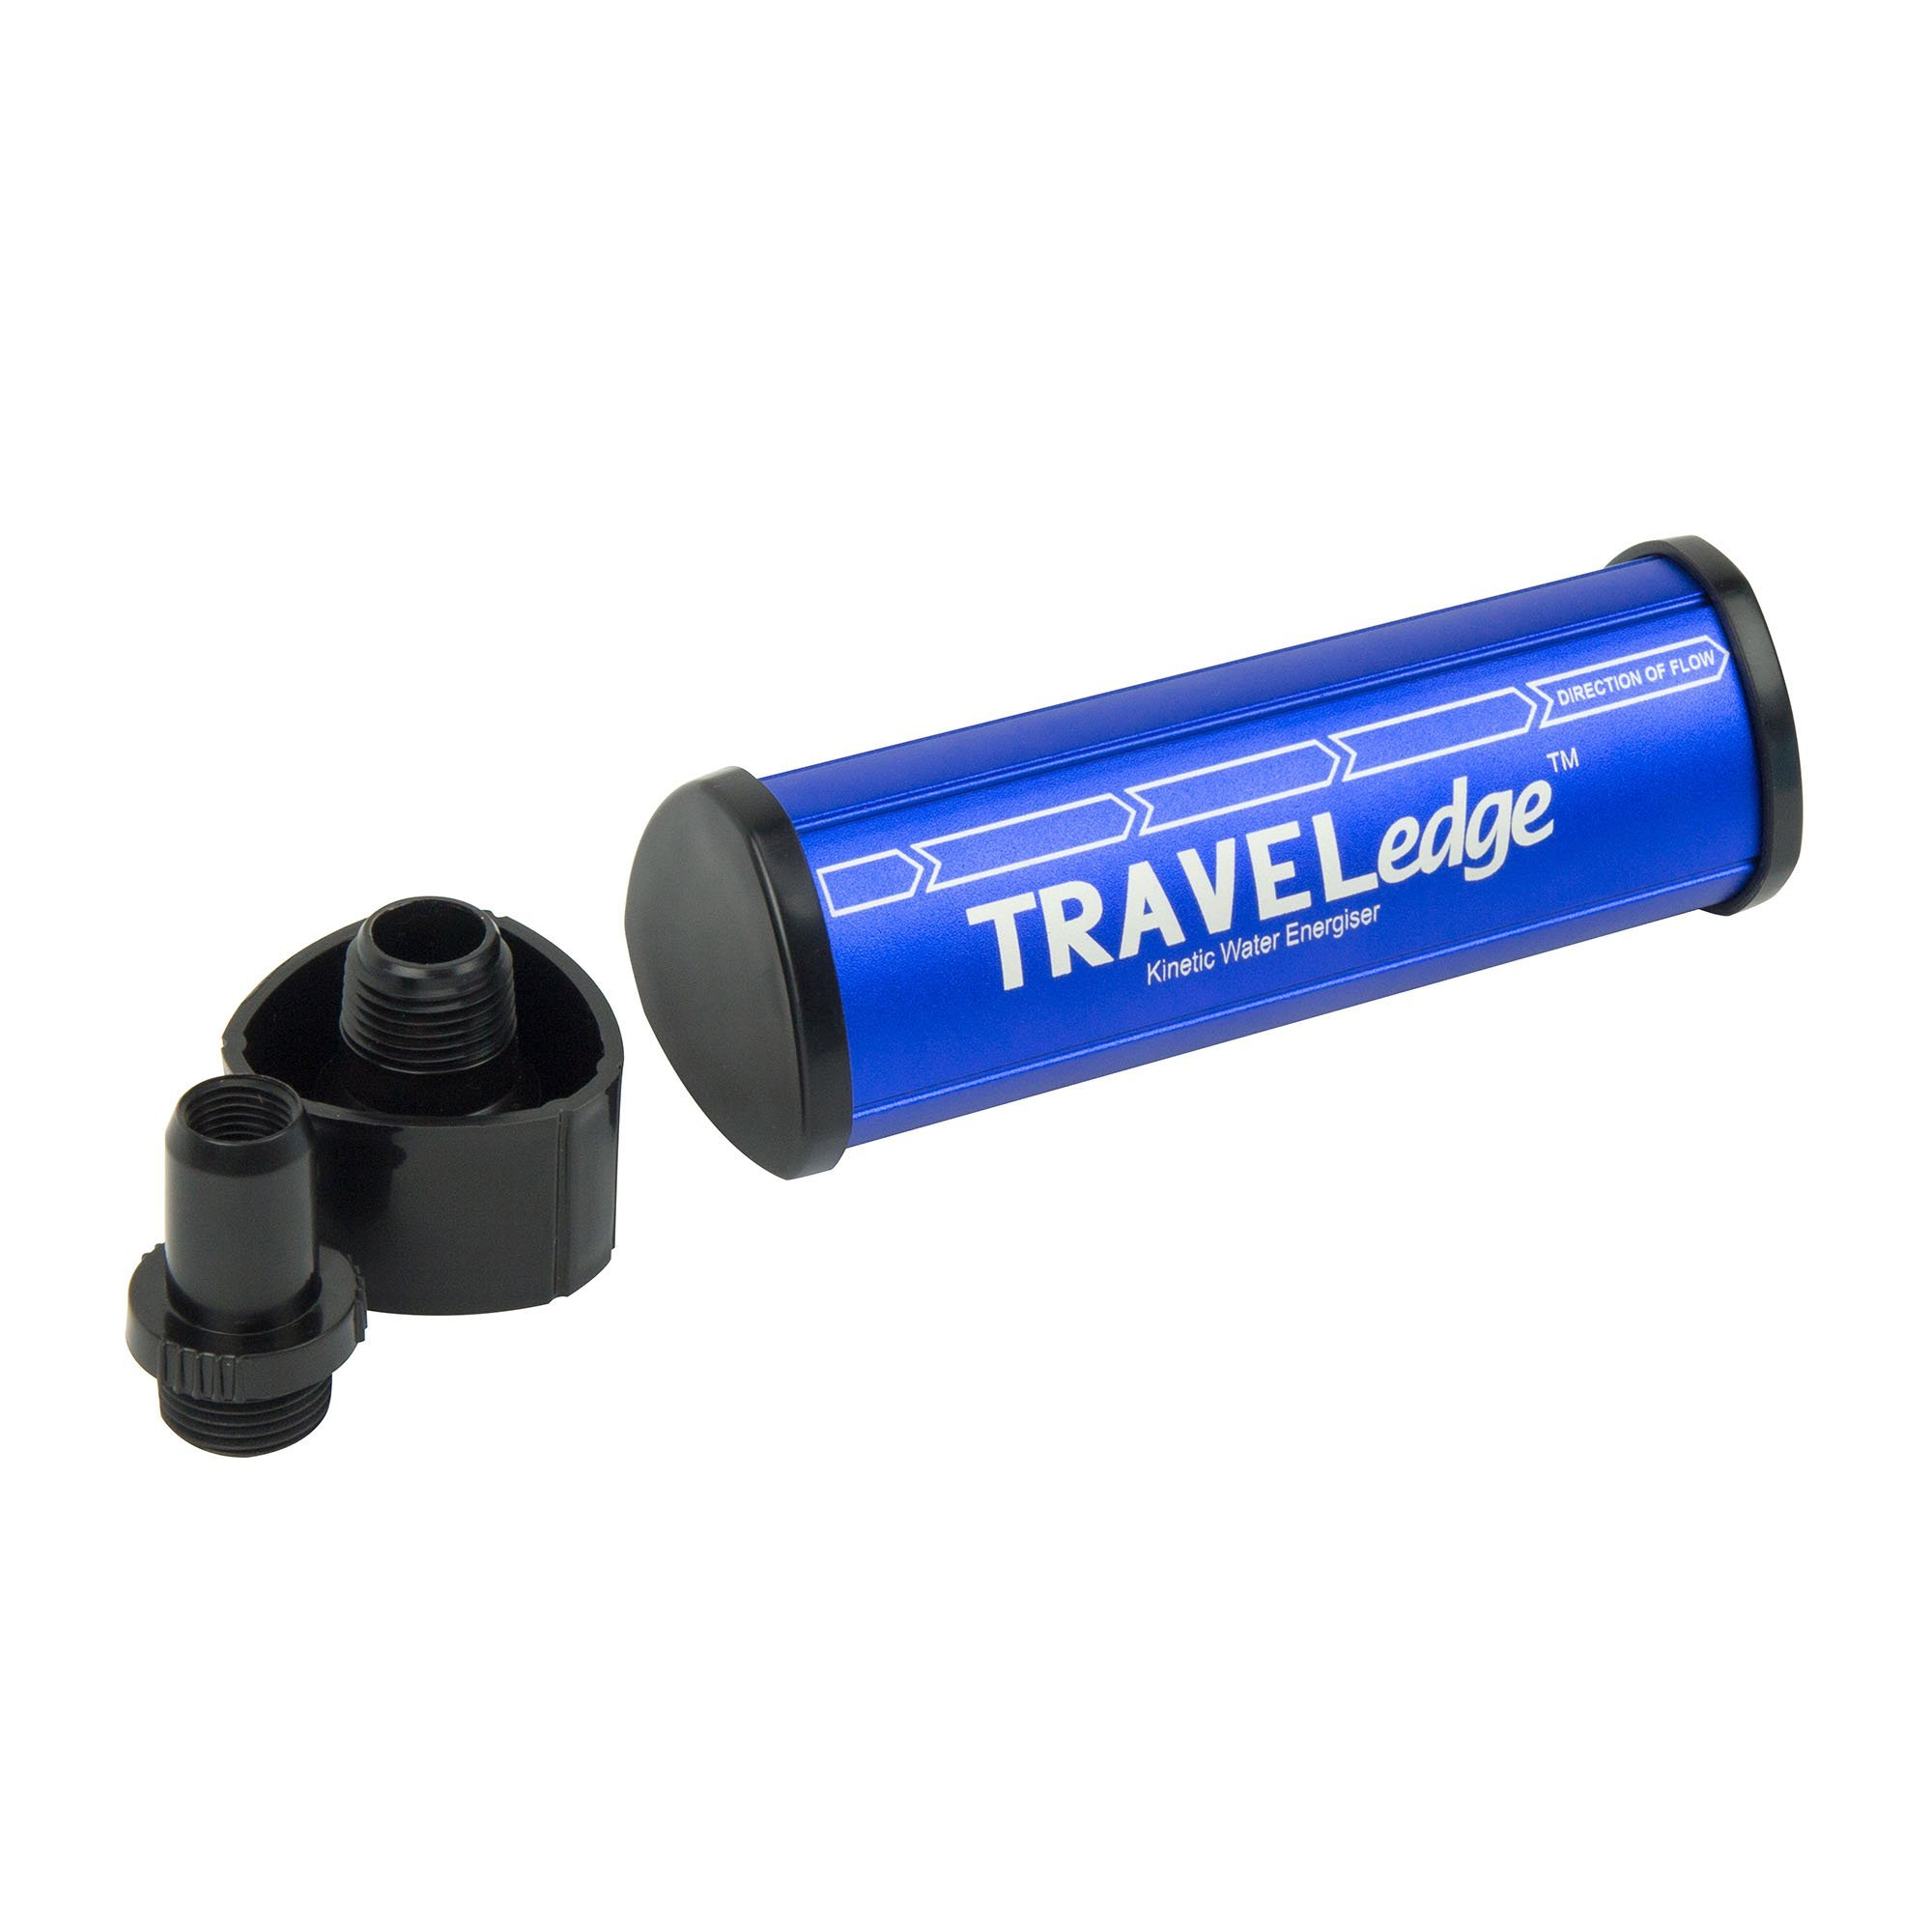 PH Perfect HWT31573 Travel Edge Kinetic Water Energizer